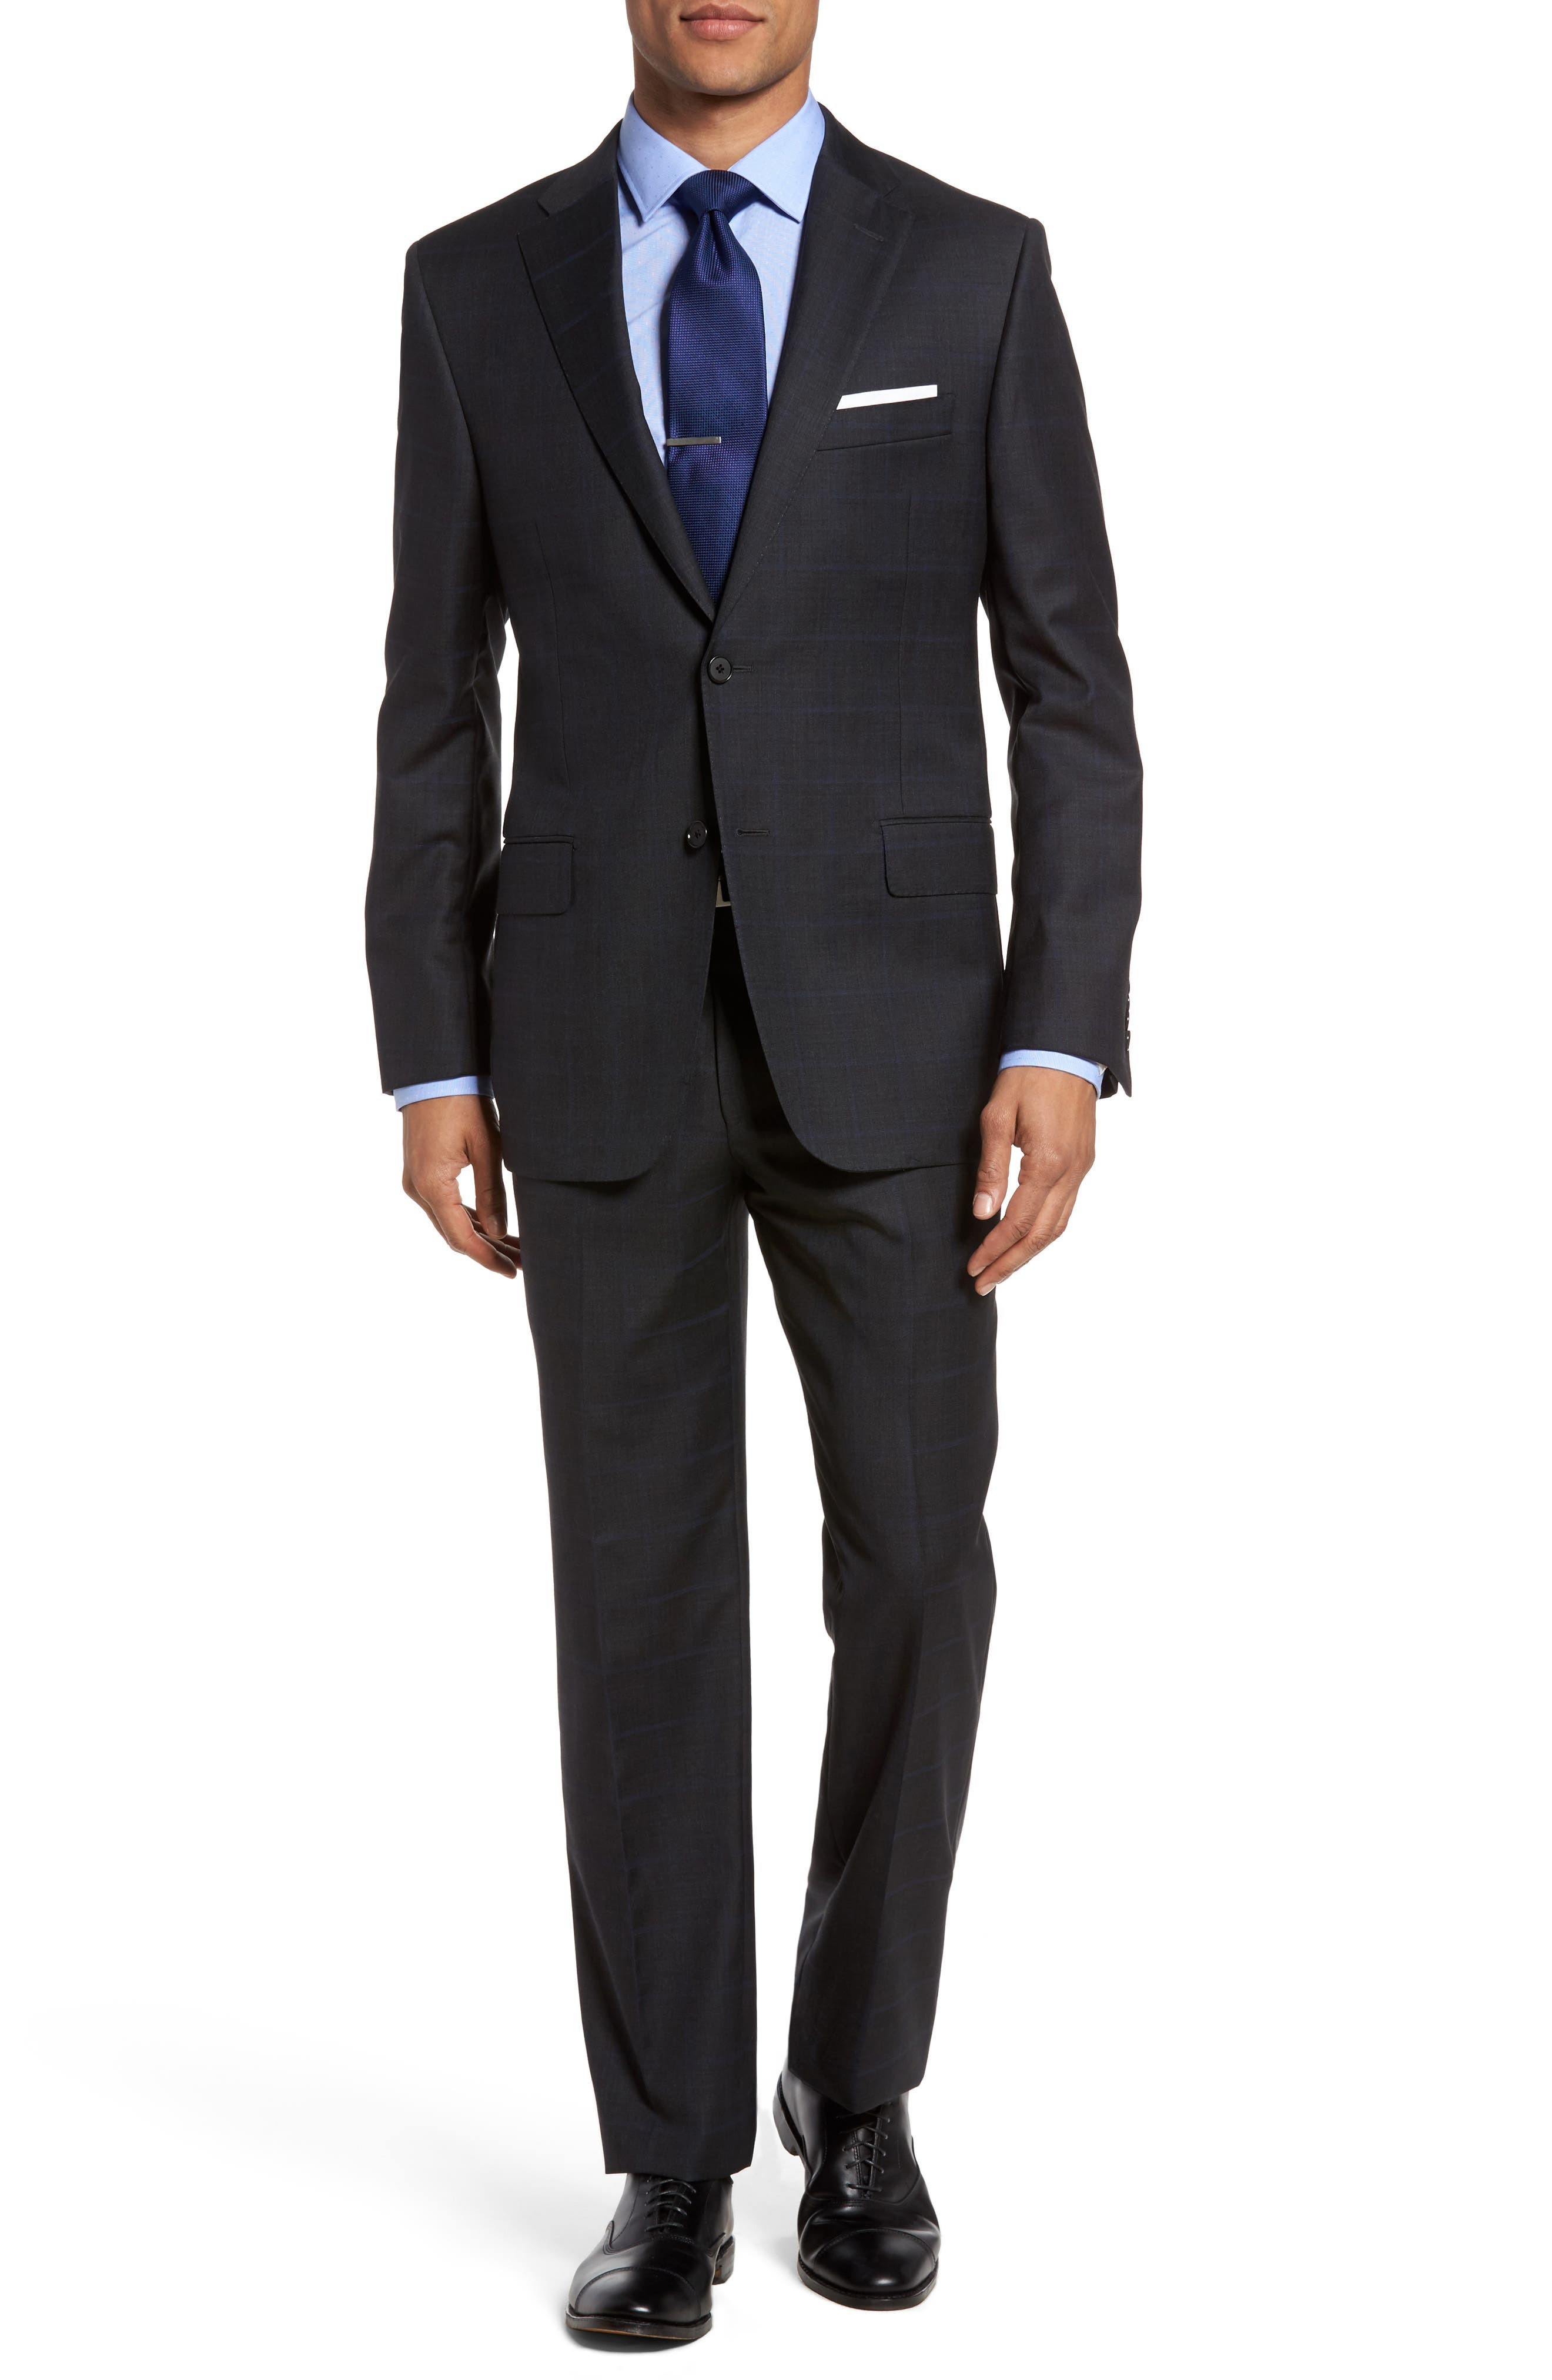 HICKEY FREEMAN B-Series Classic Fit Windowpane Wool Suit